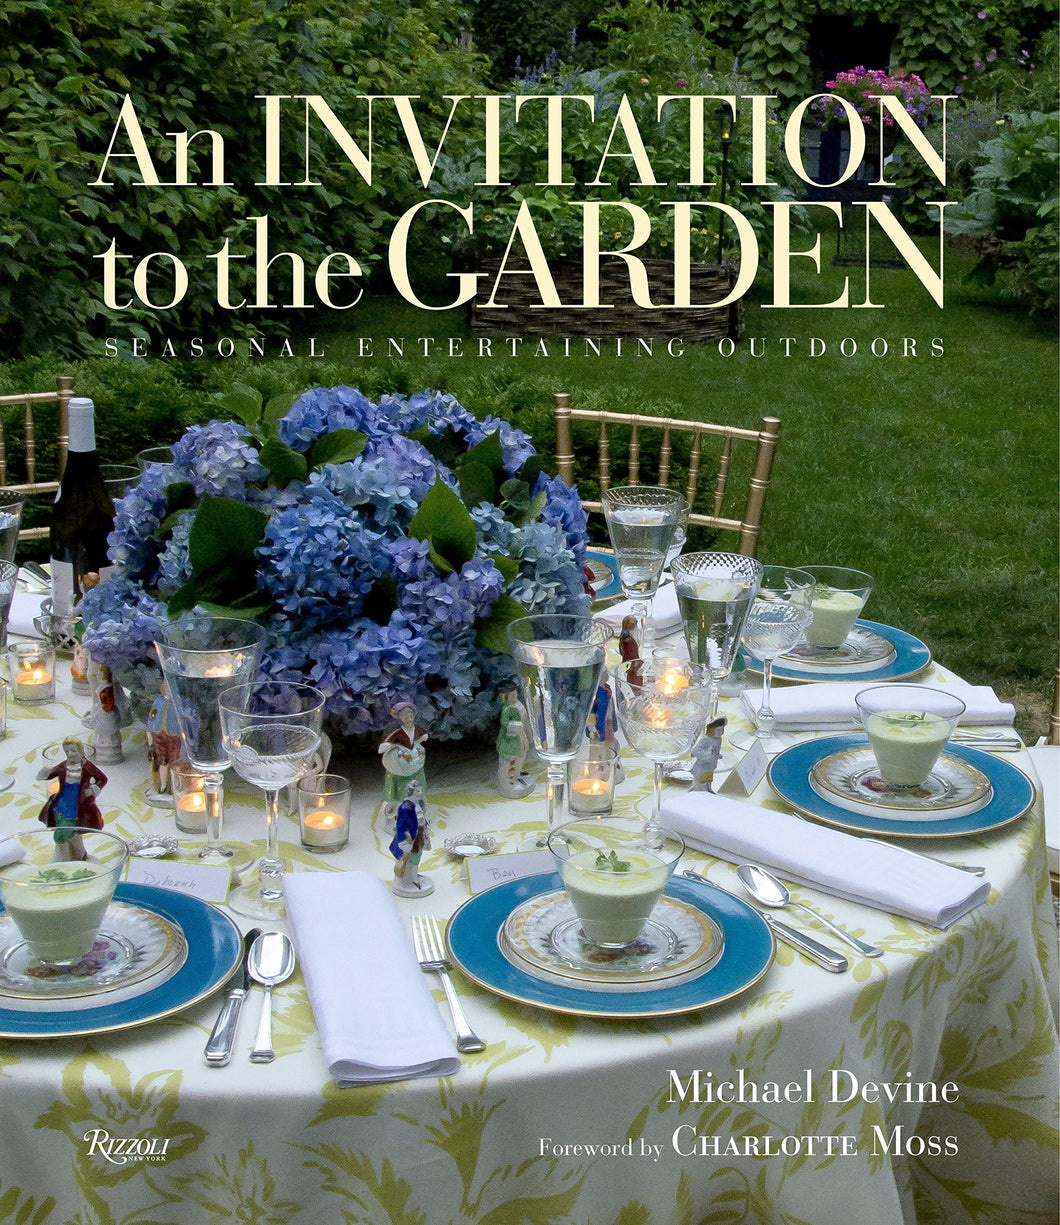 An Invitation to the Garden - Seasonal Entertaining Outdoors